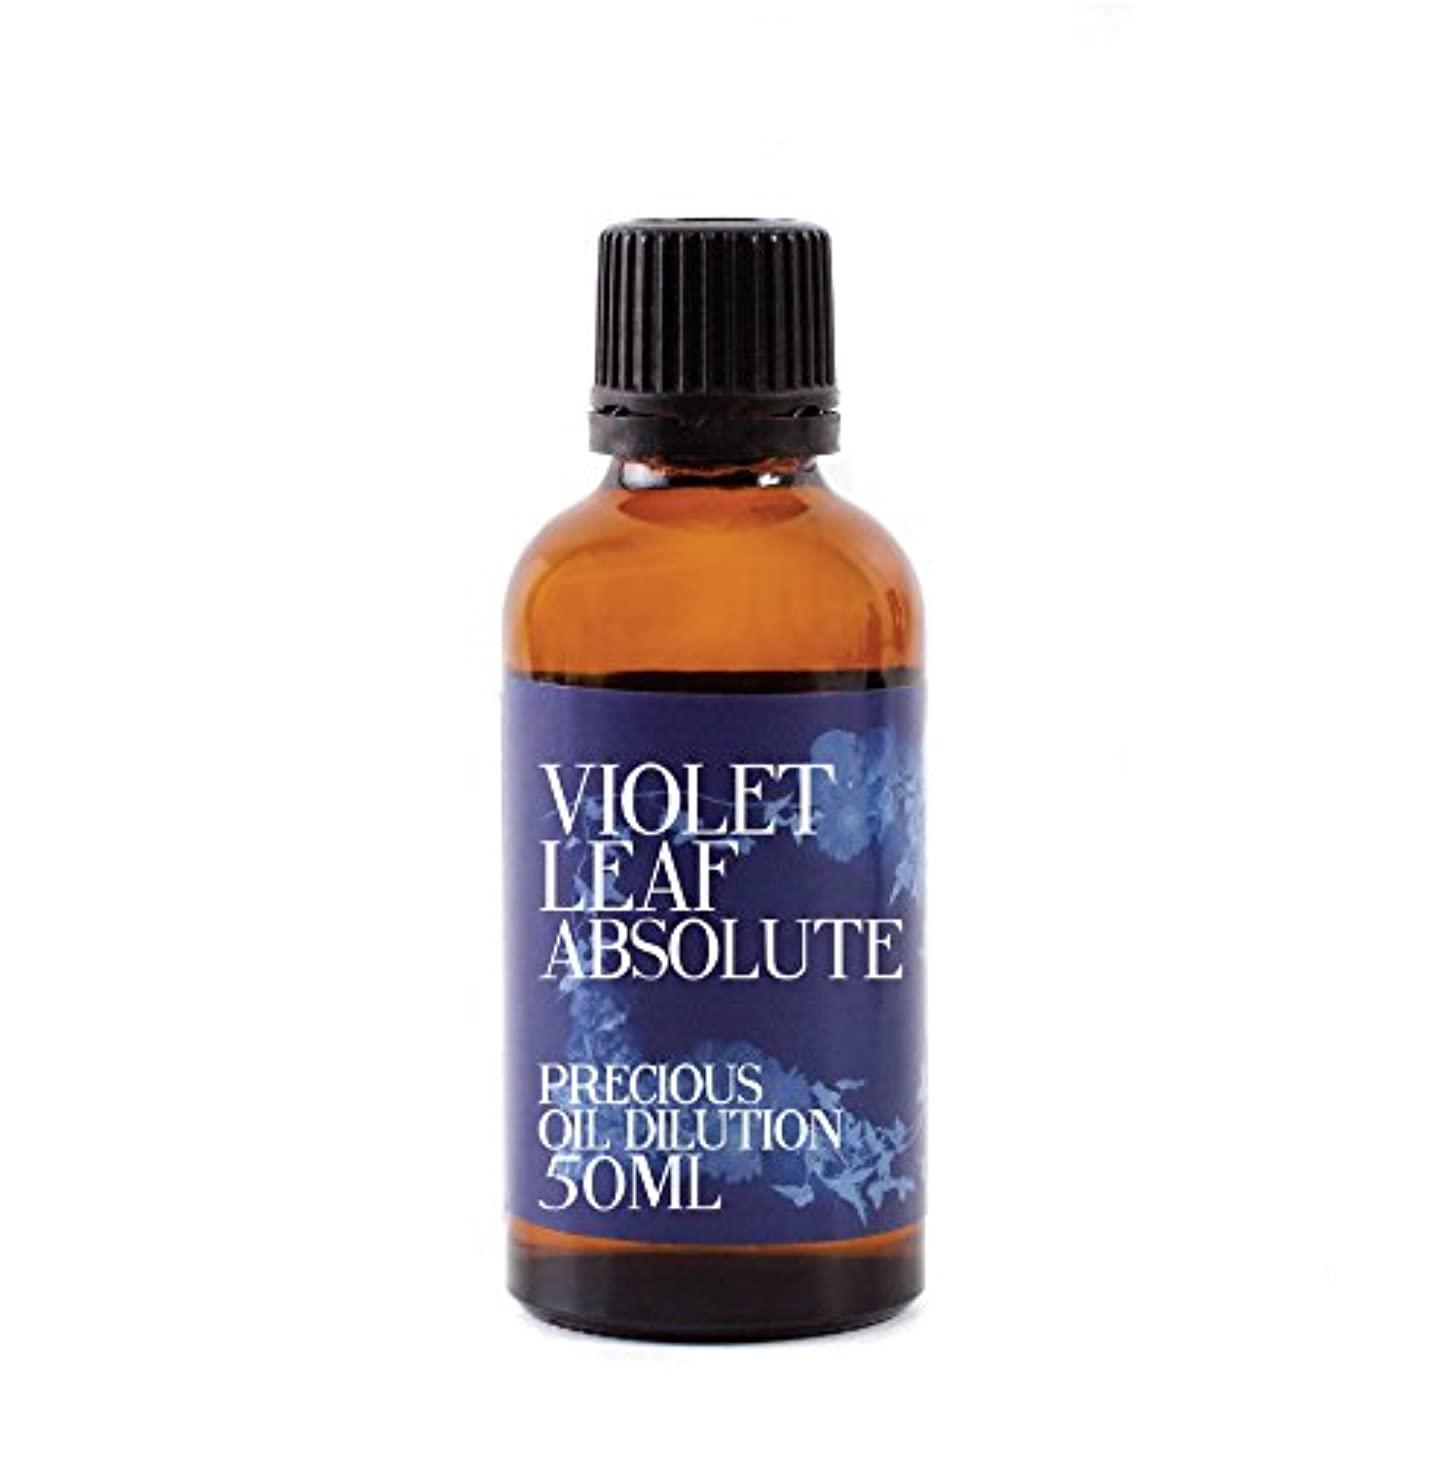 ひいきにするイデオロギーアパートViolet Leaf Absolute Oil Dilution - 50ml - 3% Jojoba Blend